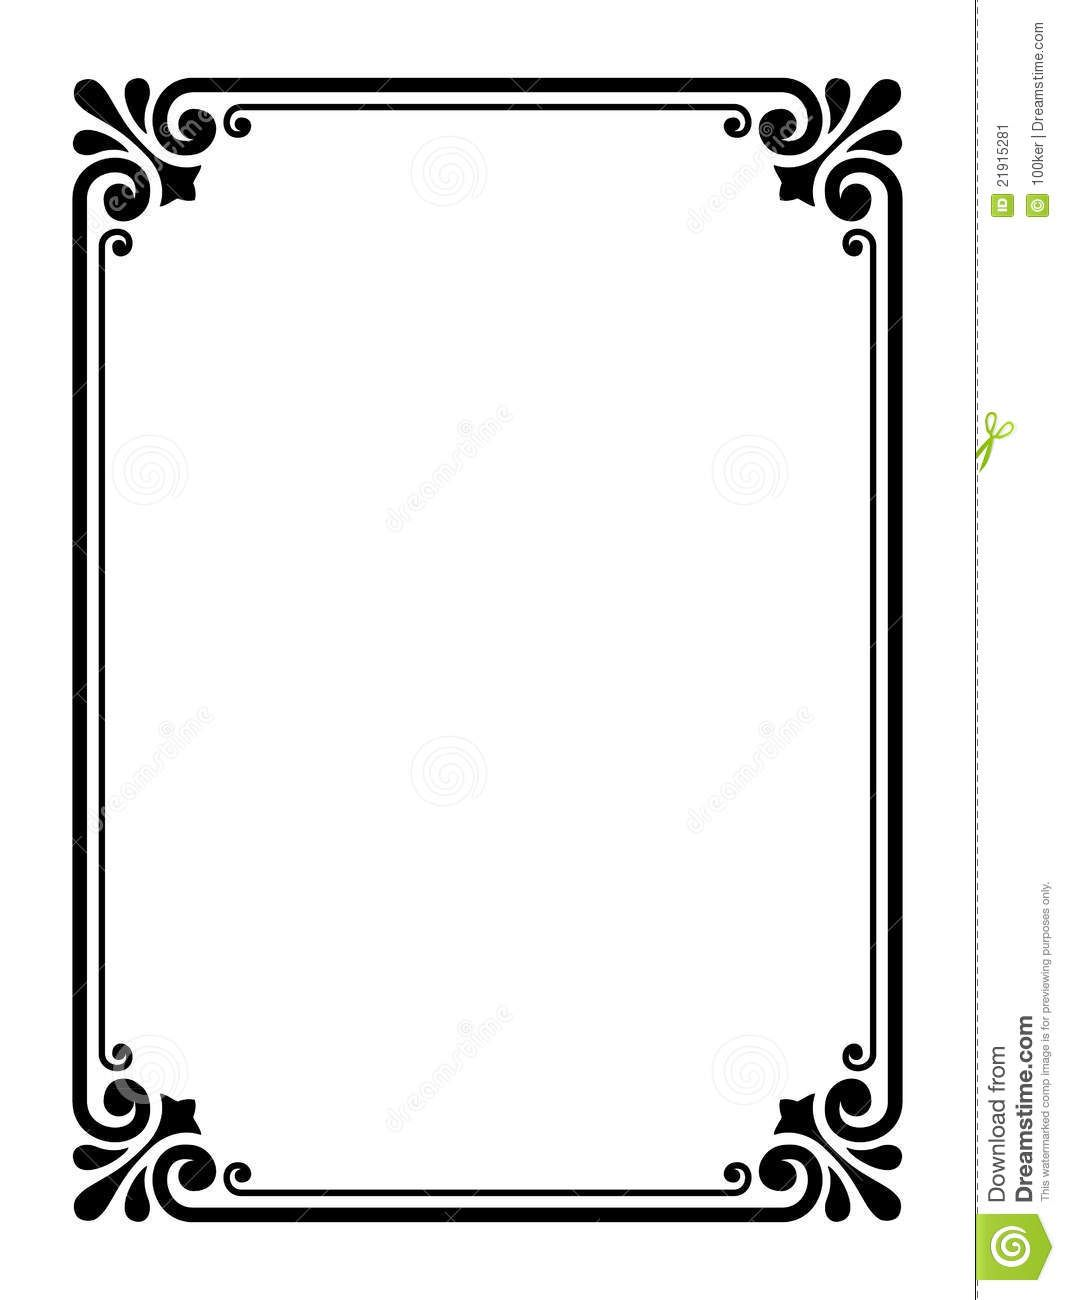 simple frame clipart clipart kid house ideas pinterest rh pinterest com clipart border images clip art borders